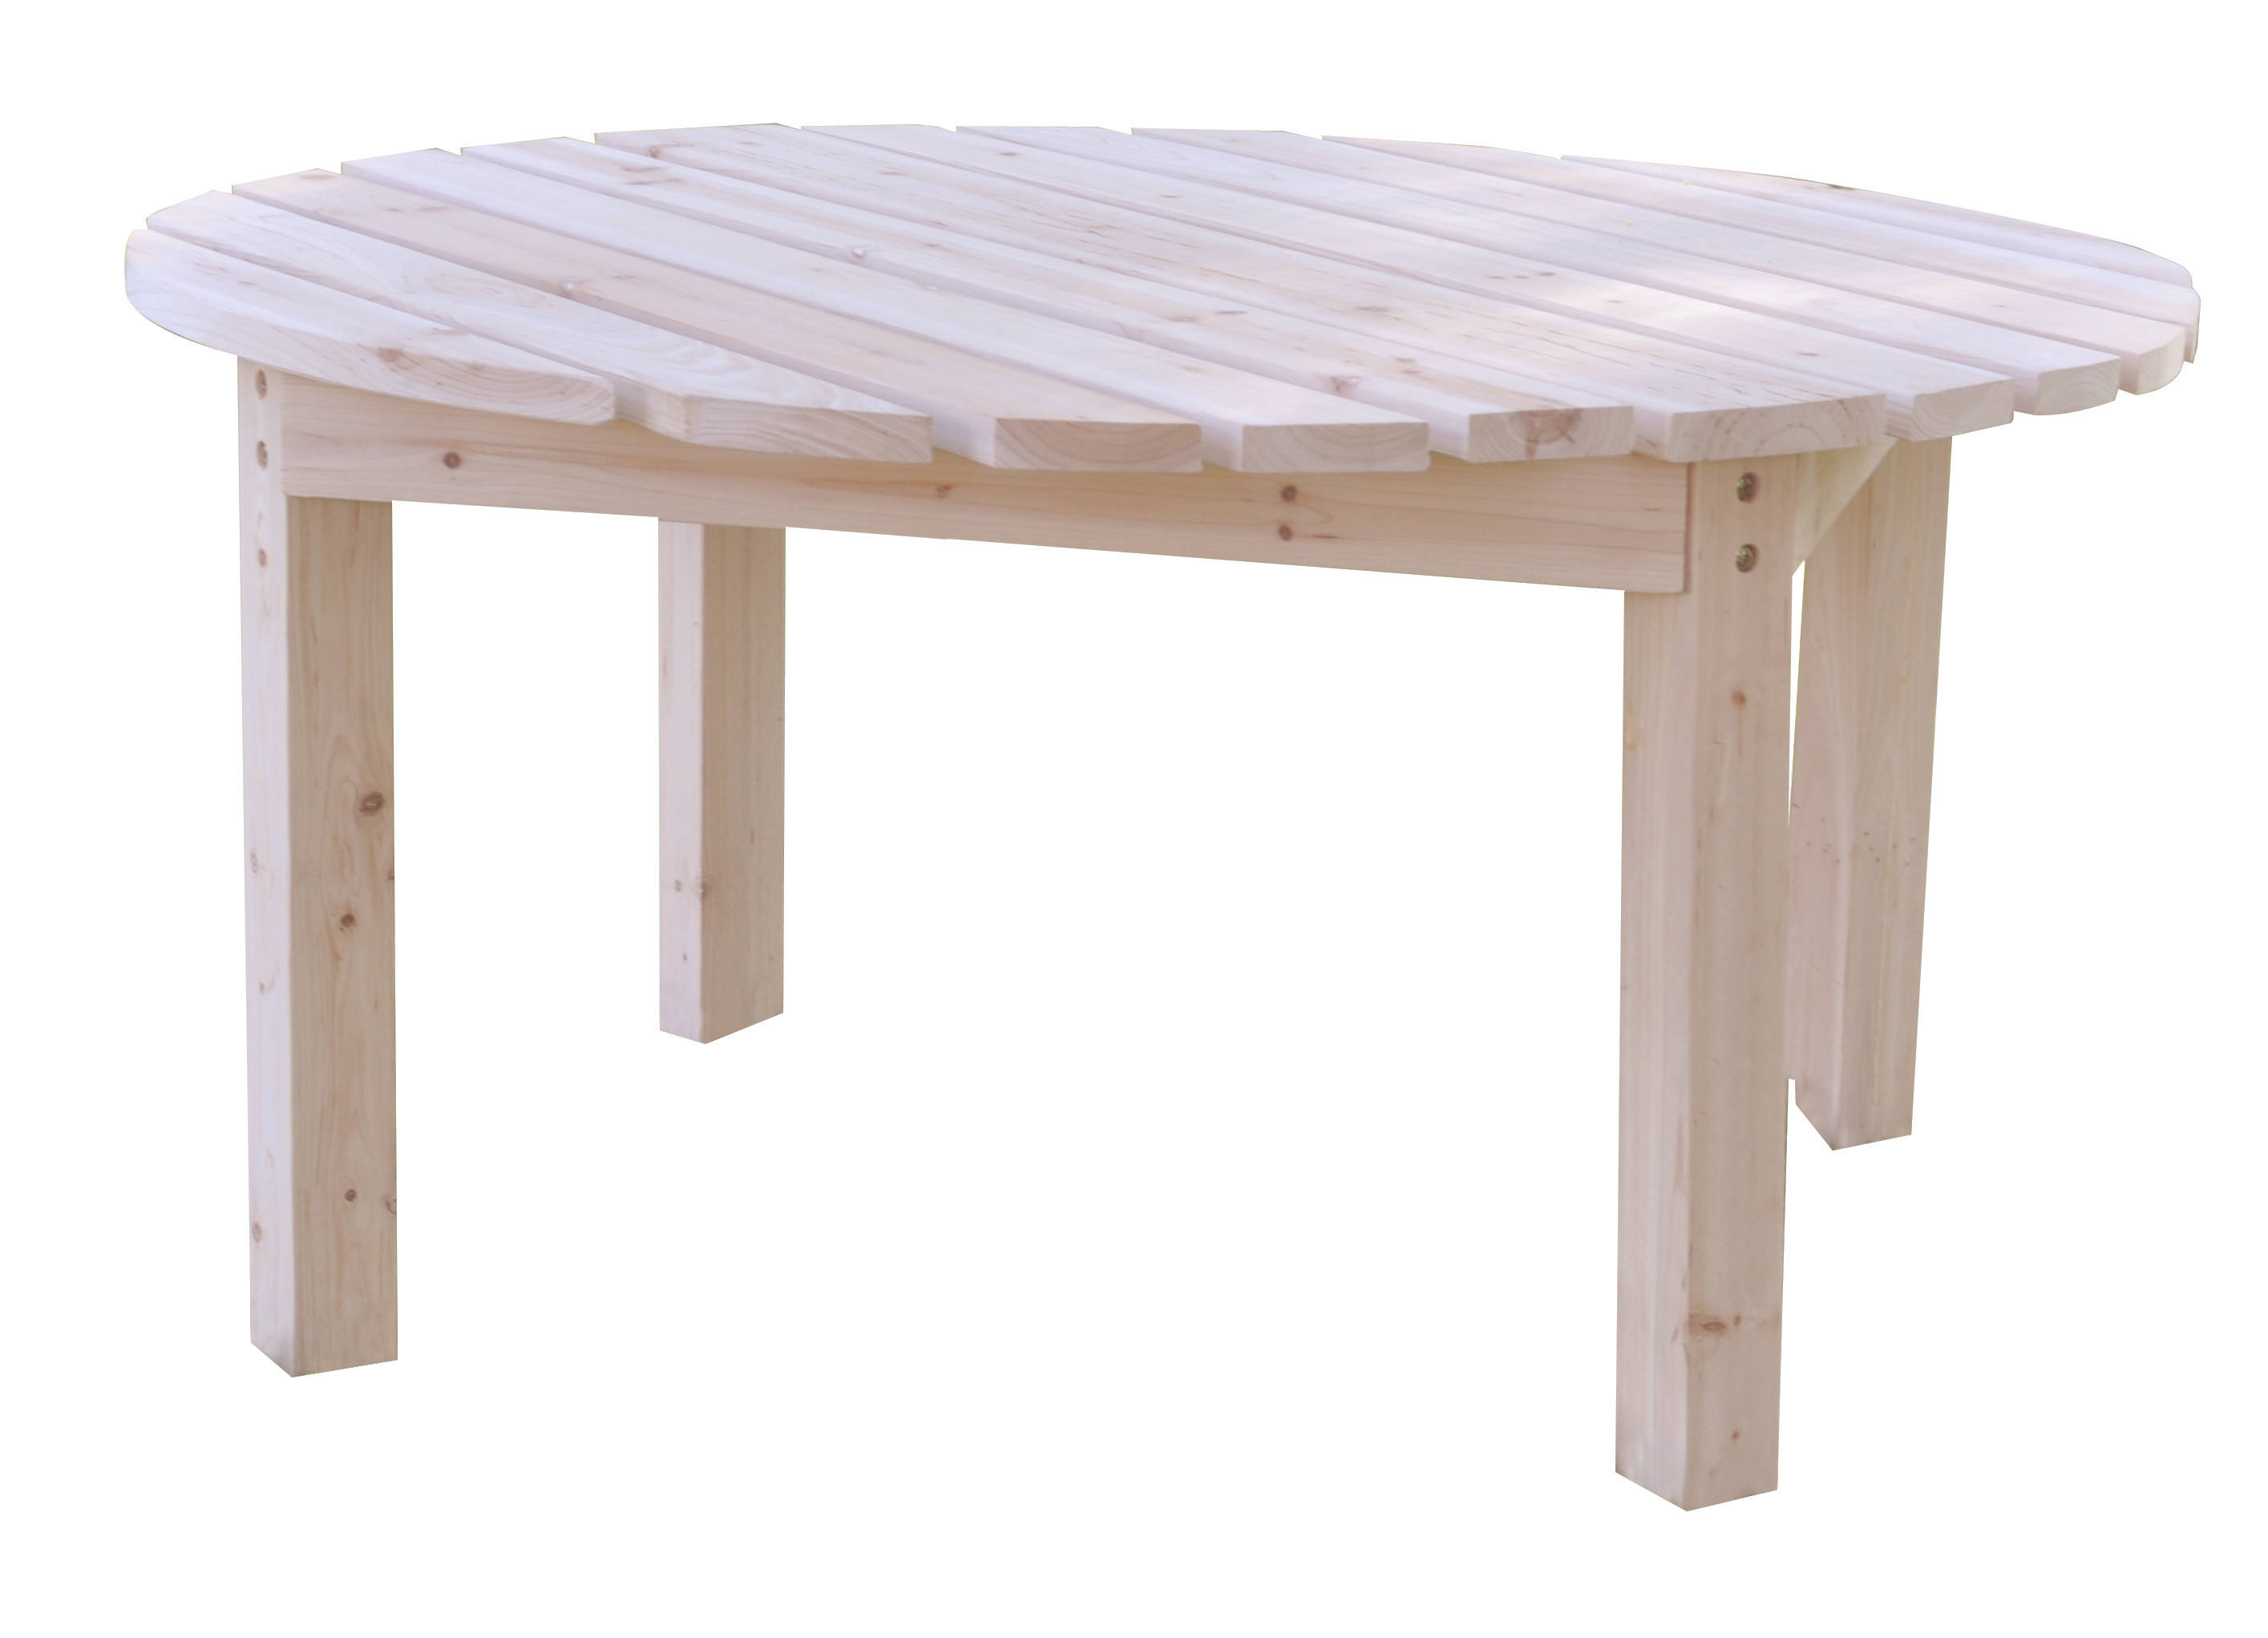 38 Inch Round Table.Classic Natural White Cedarwood 38 Inch Round Outdoor Chat Tables